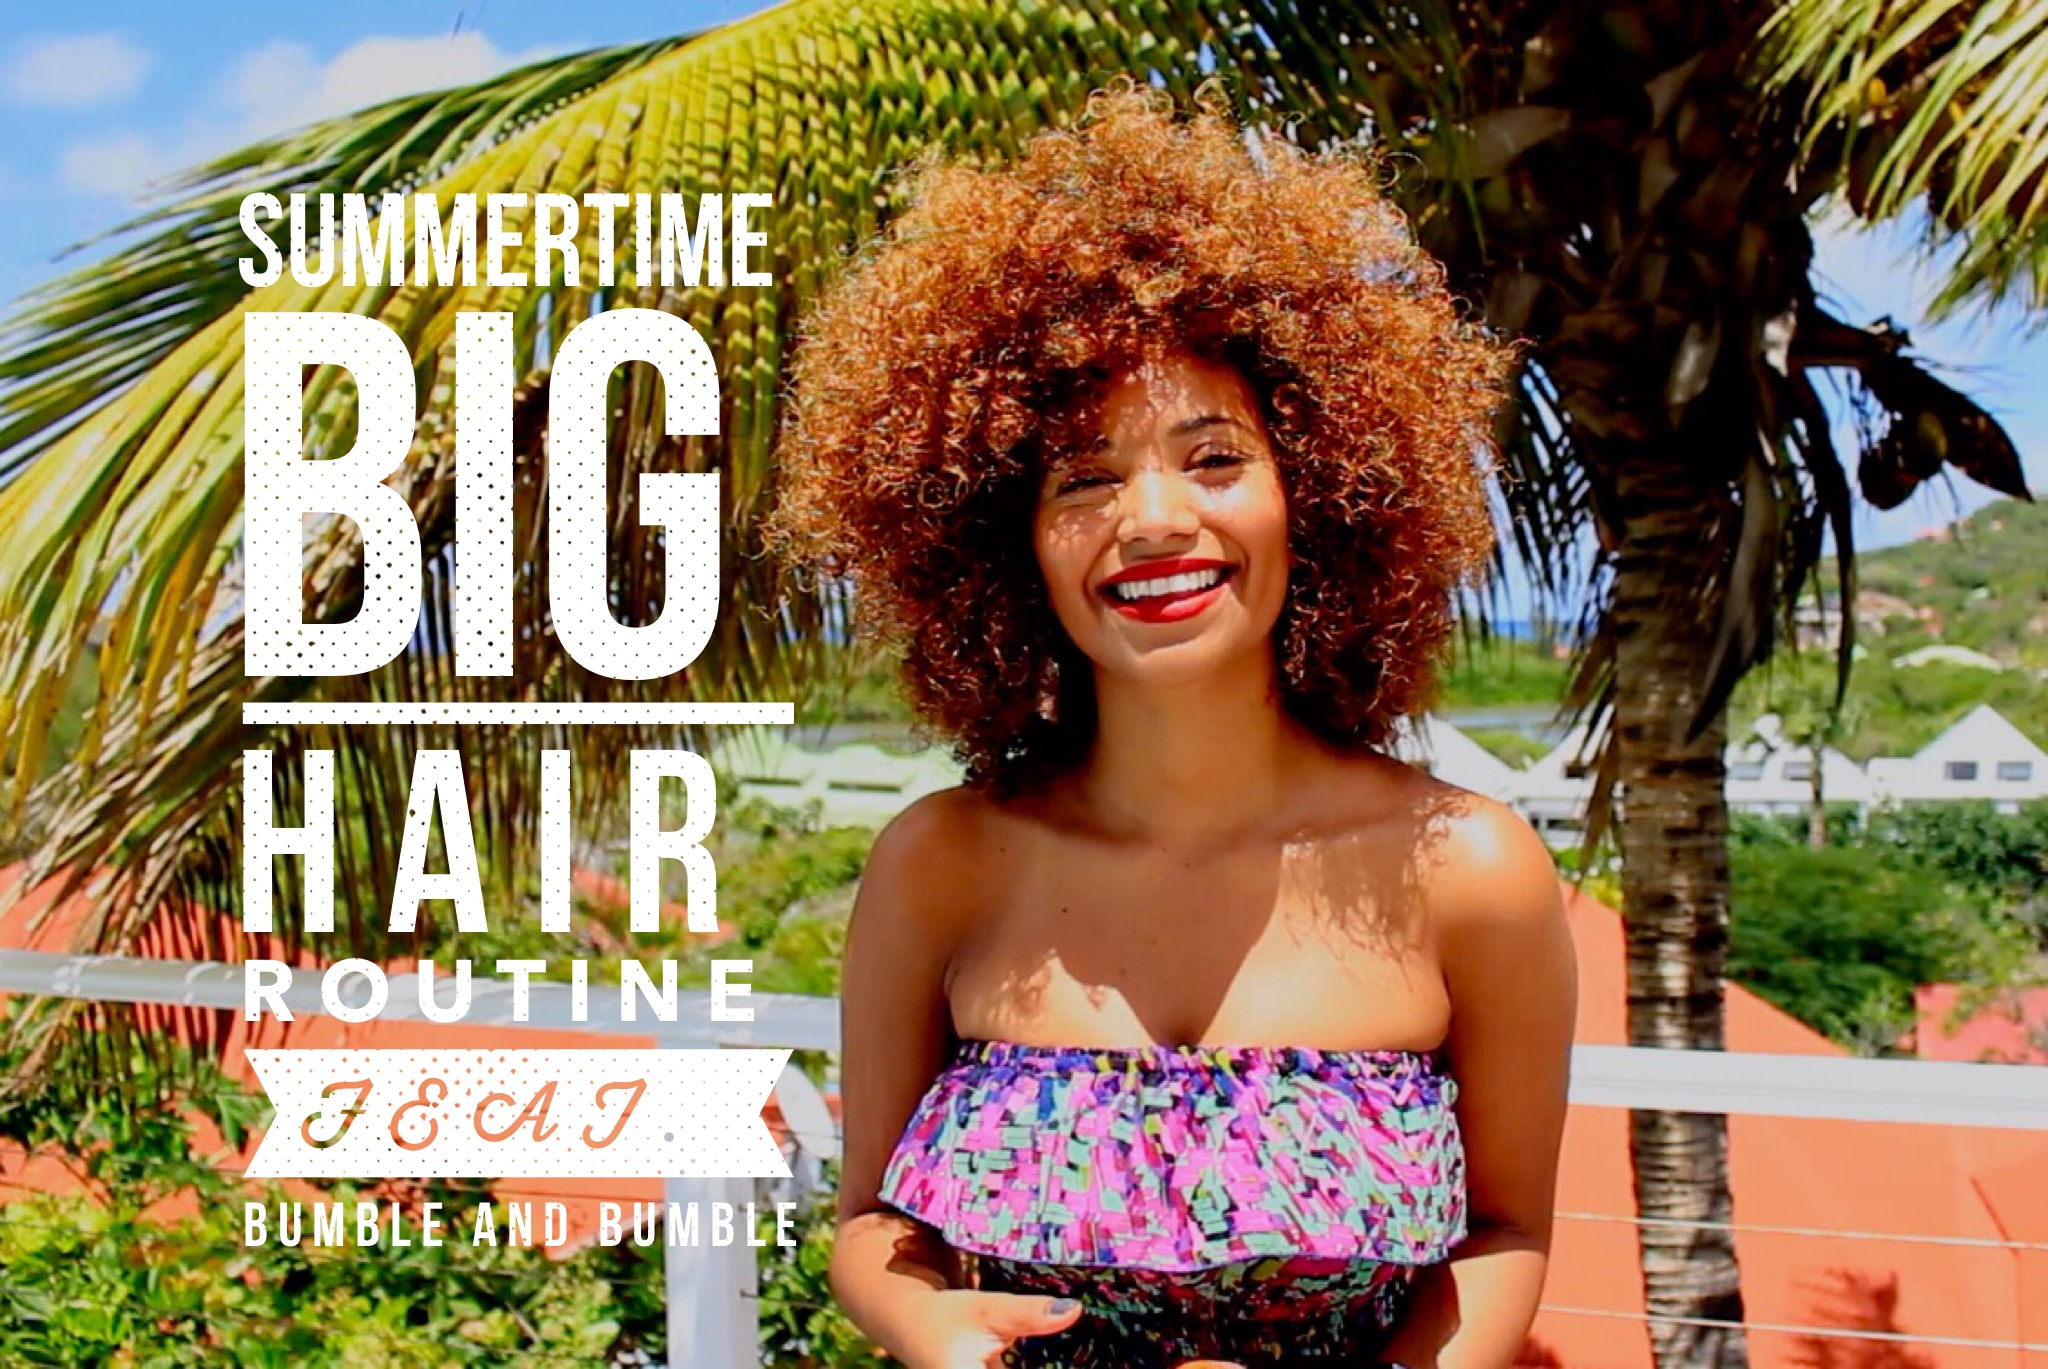 Summertime Big Hair Routube BANDB